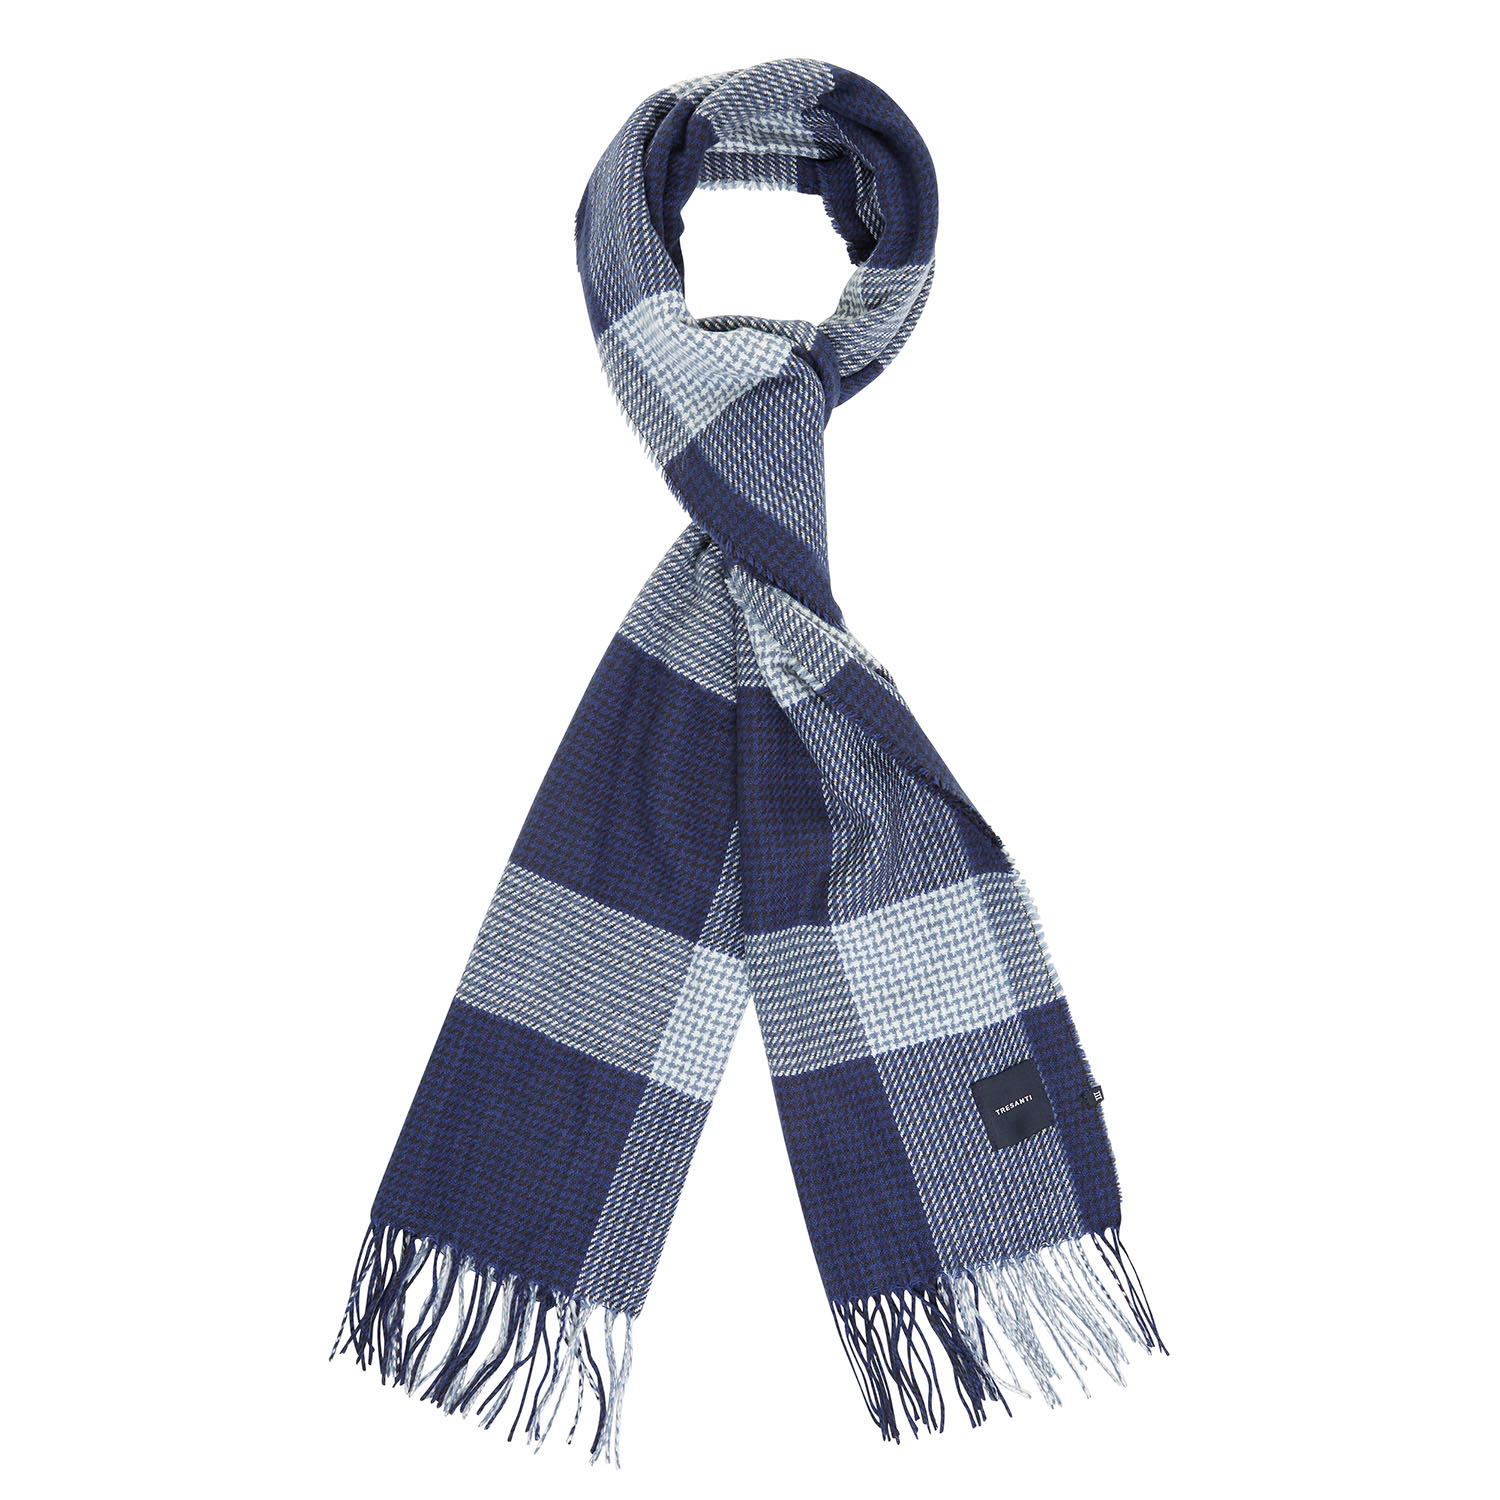 EVERD | Checked scarf in tints of blue with pied-de-poule accents